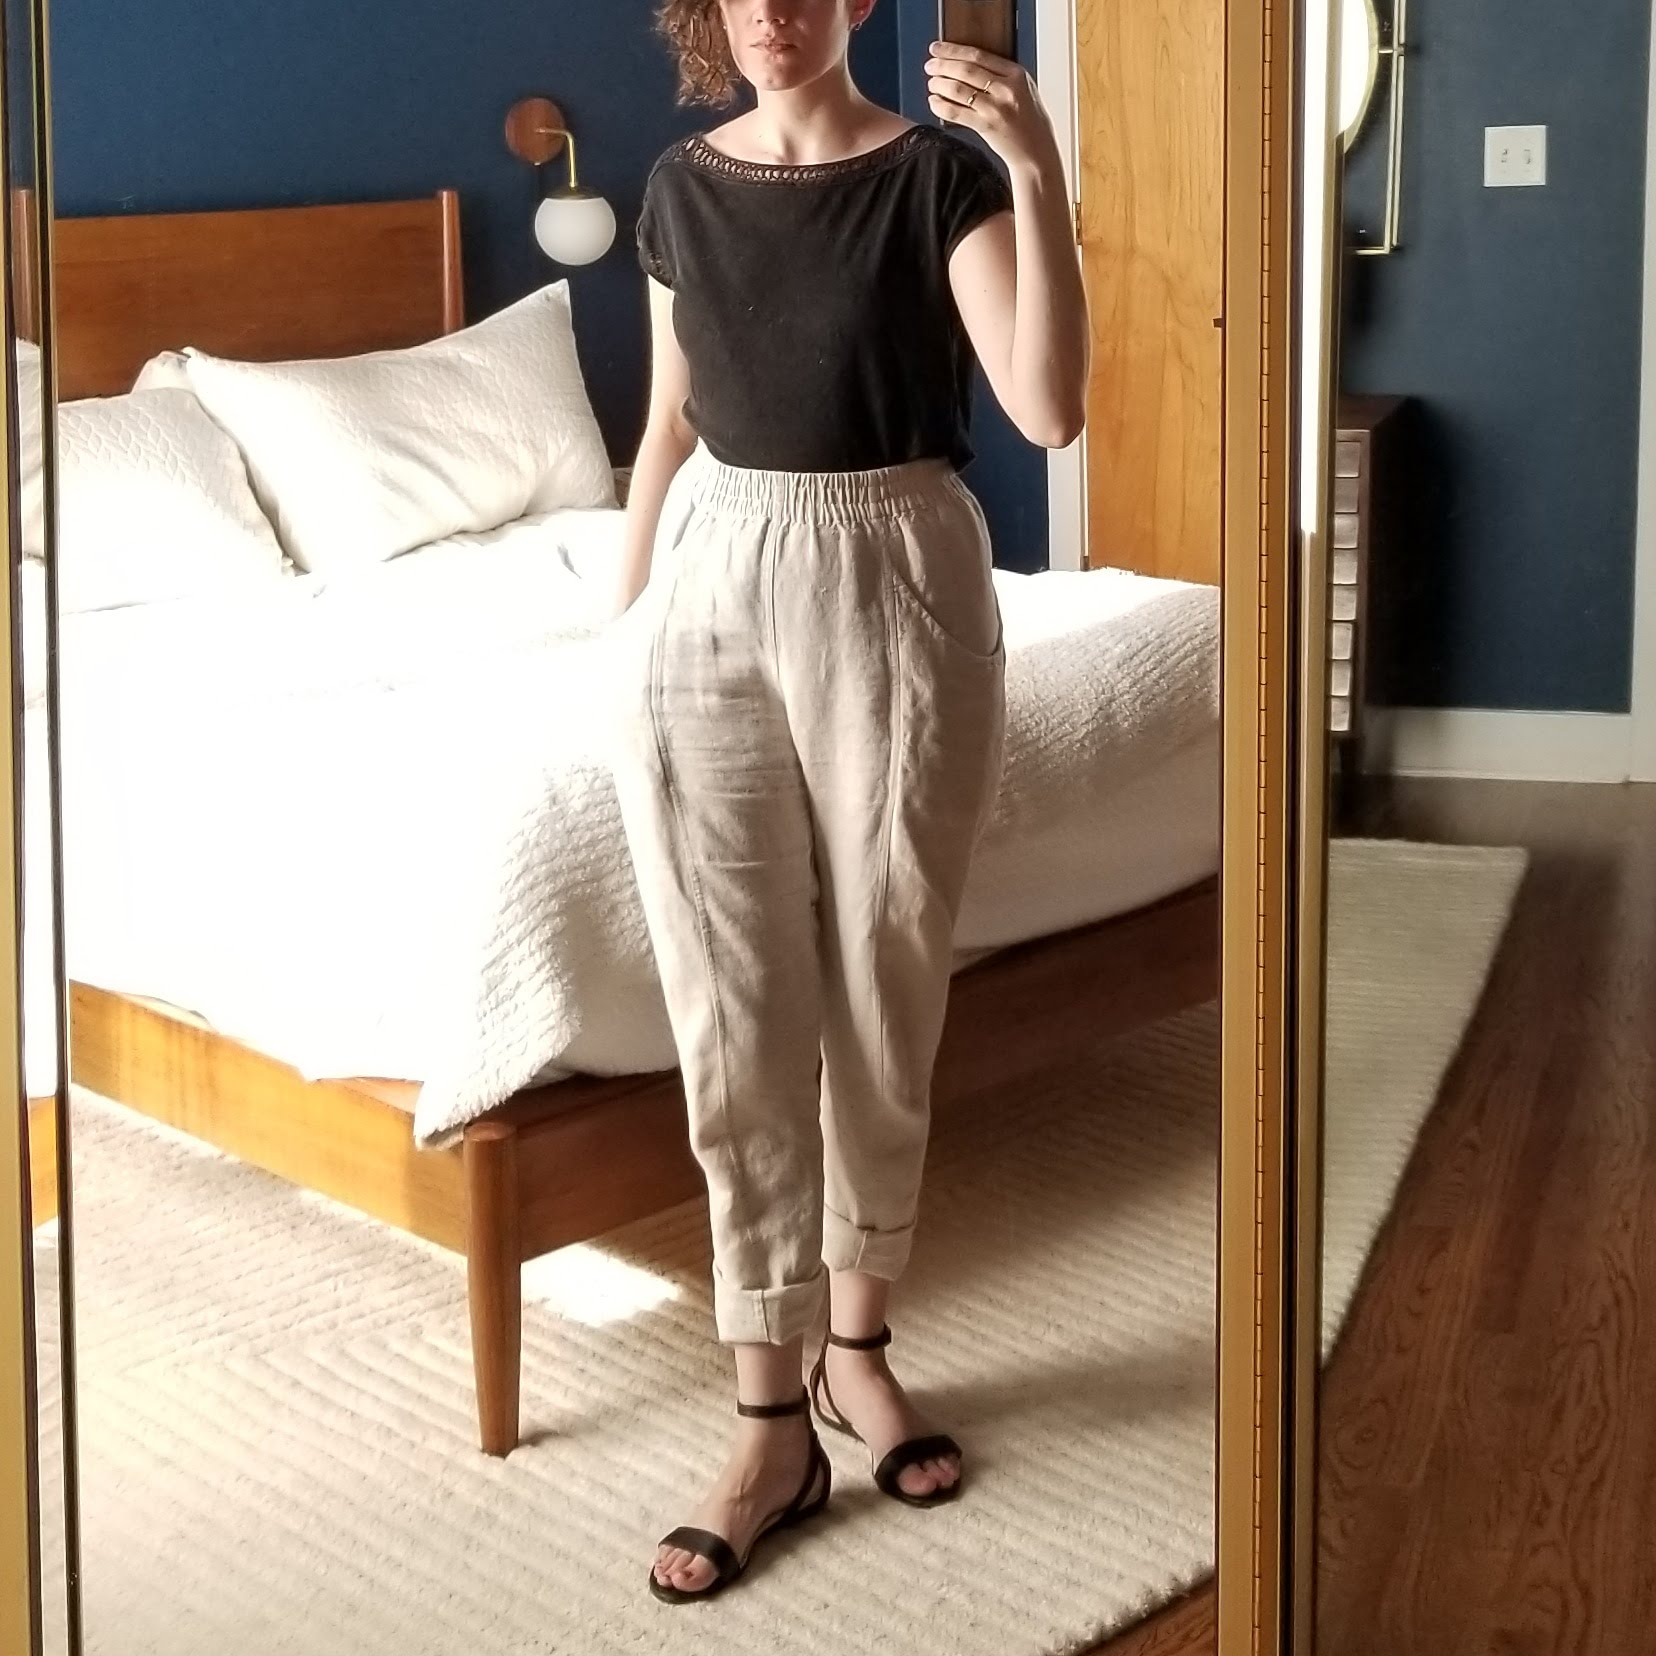 Monday - May 21, 2018Linen on linen, black over flax. The debut of the sandals I snapped up from Slowre. They are the same as my other favorite pair in the pale honey color (please bring back pale honey!)Shirt / Loft (1H)Pants / Elizabeth Suzann (1H)Shoes / Nisolo (2H - Slowre)